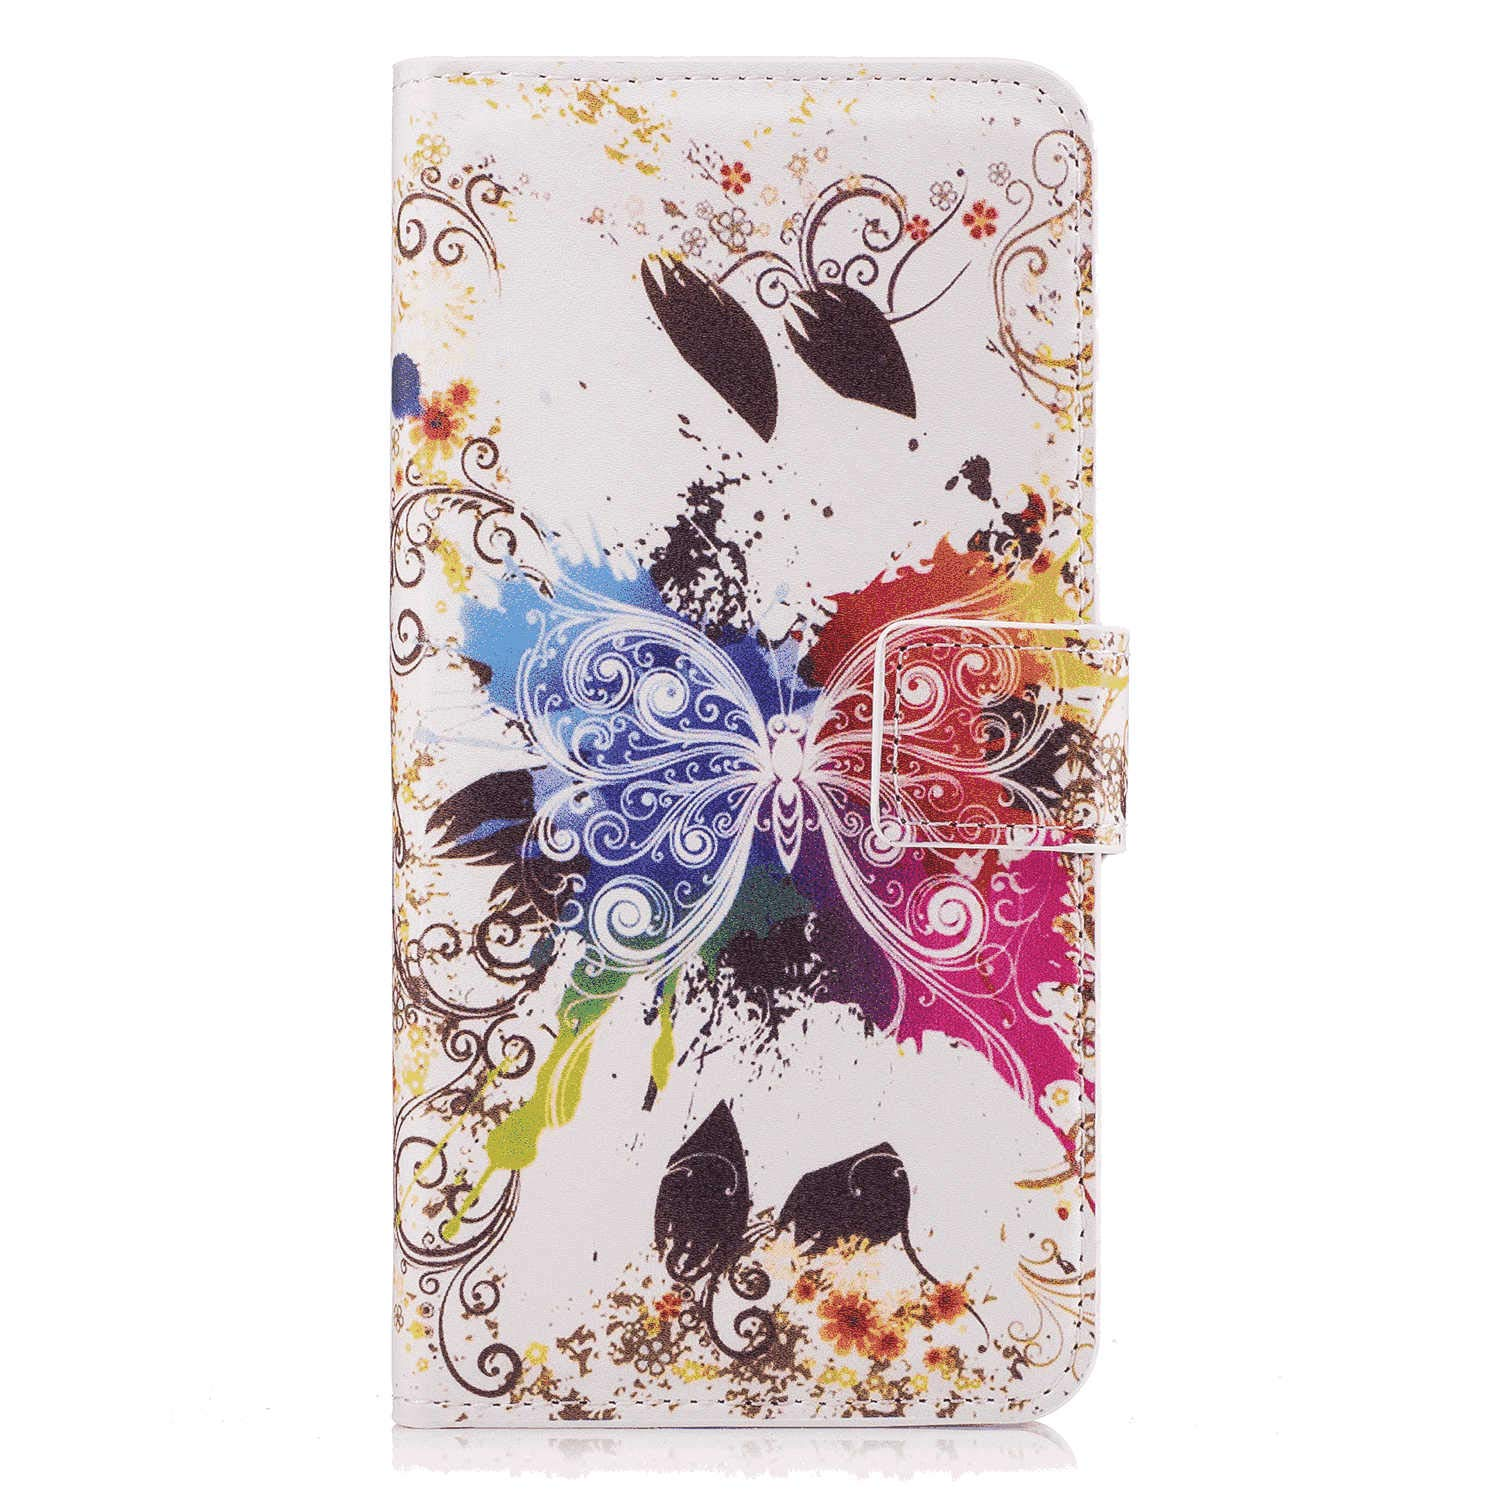 Huawei P10 Plus Flip Case Cover for Huawei P10 Plus Leather Card Holders Extra-Protective Business Kickstand Wallet Cover Flip Cover